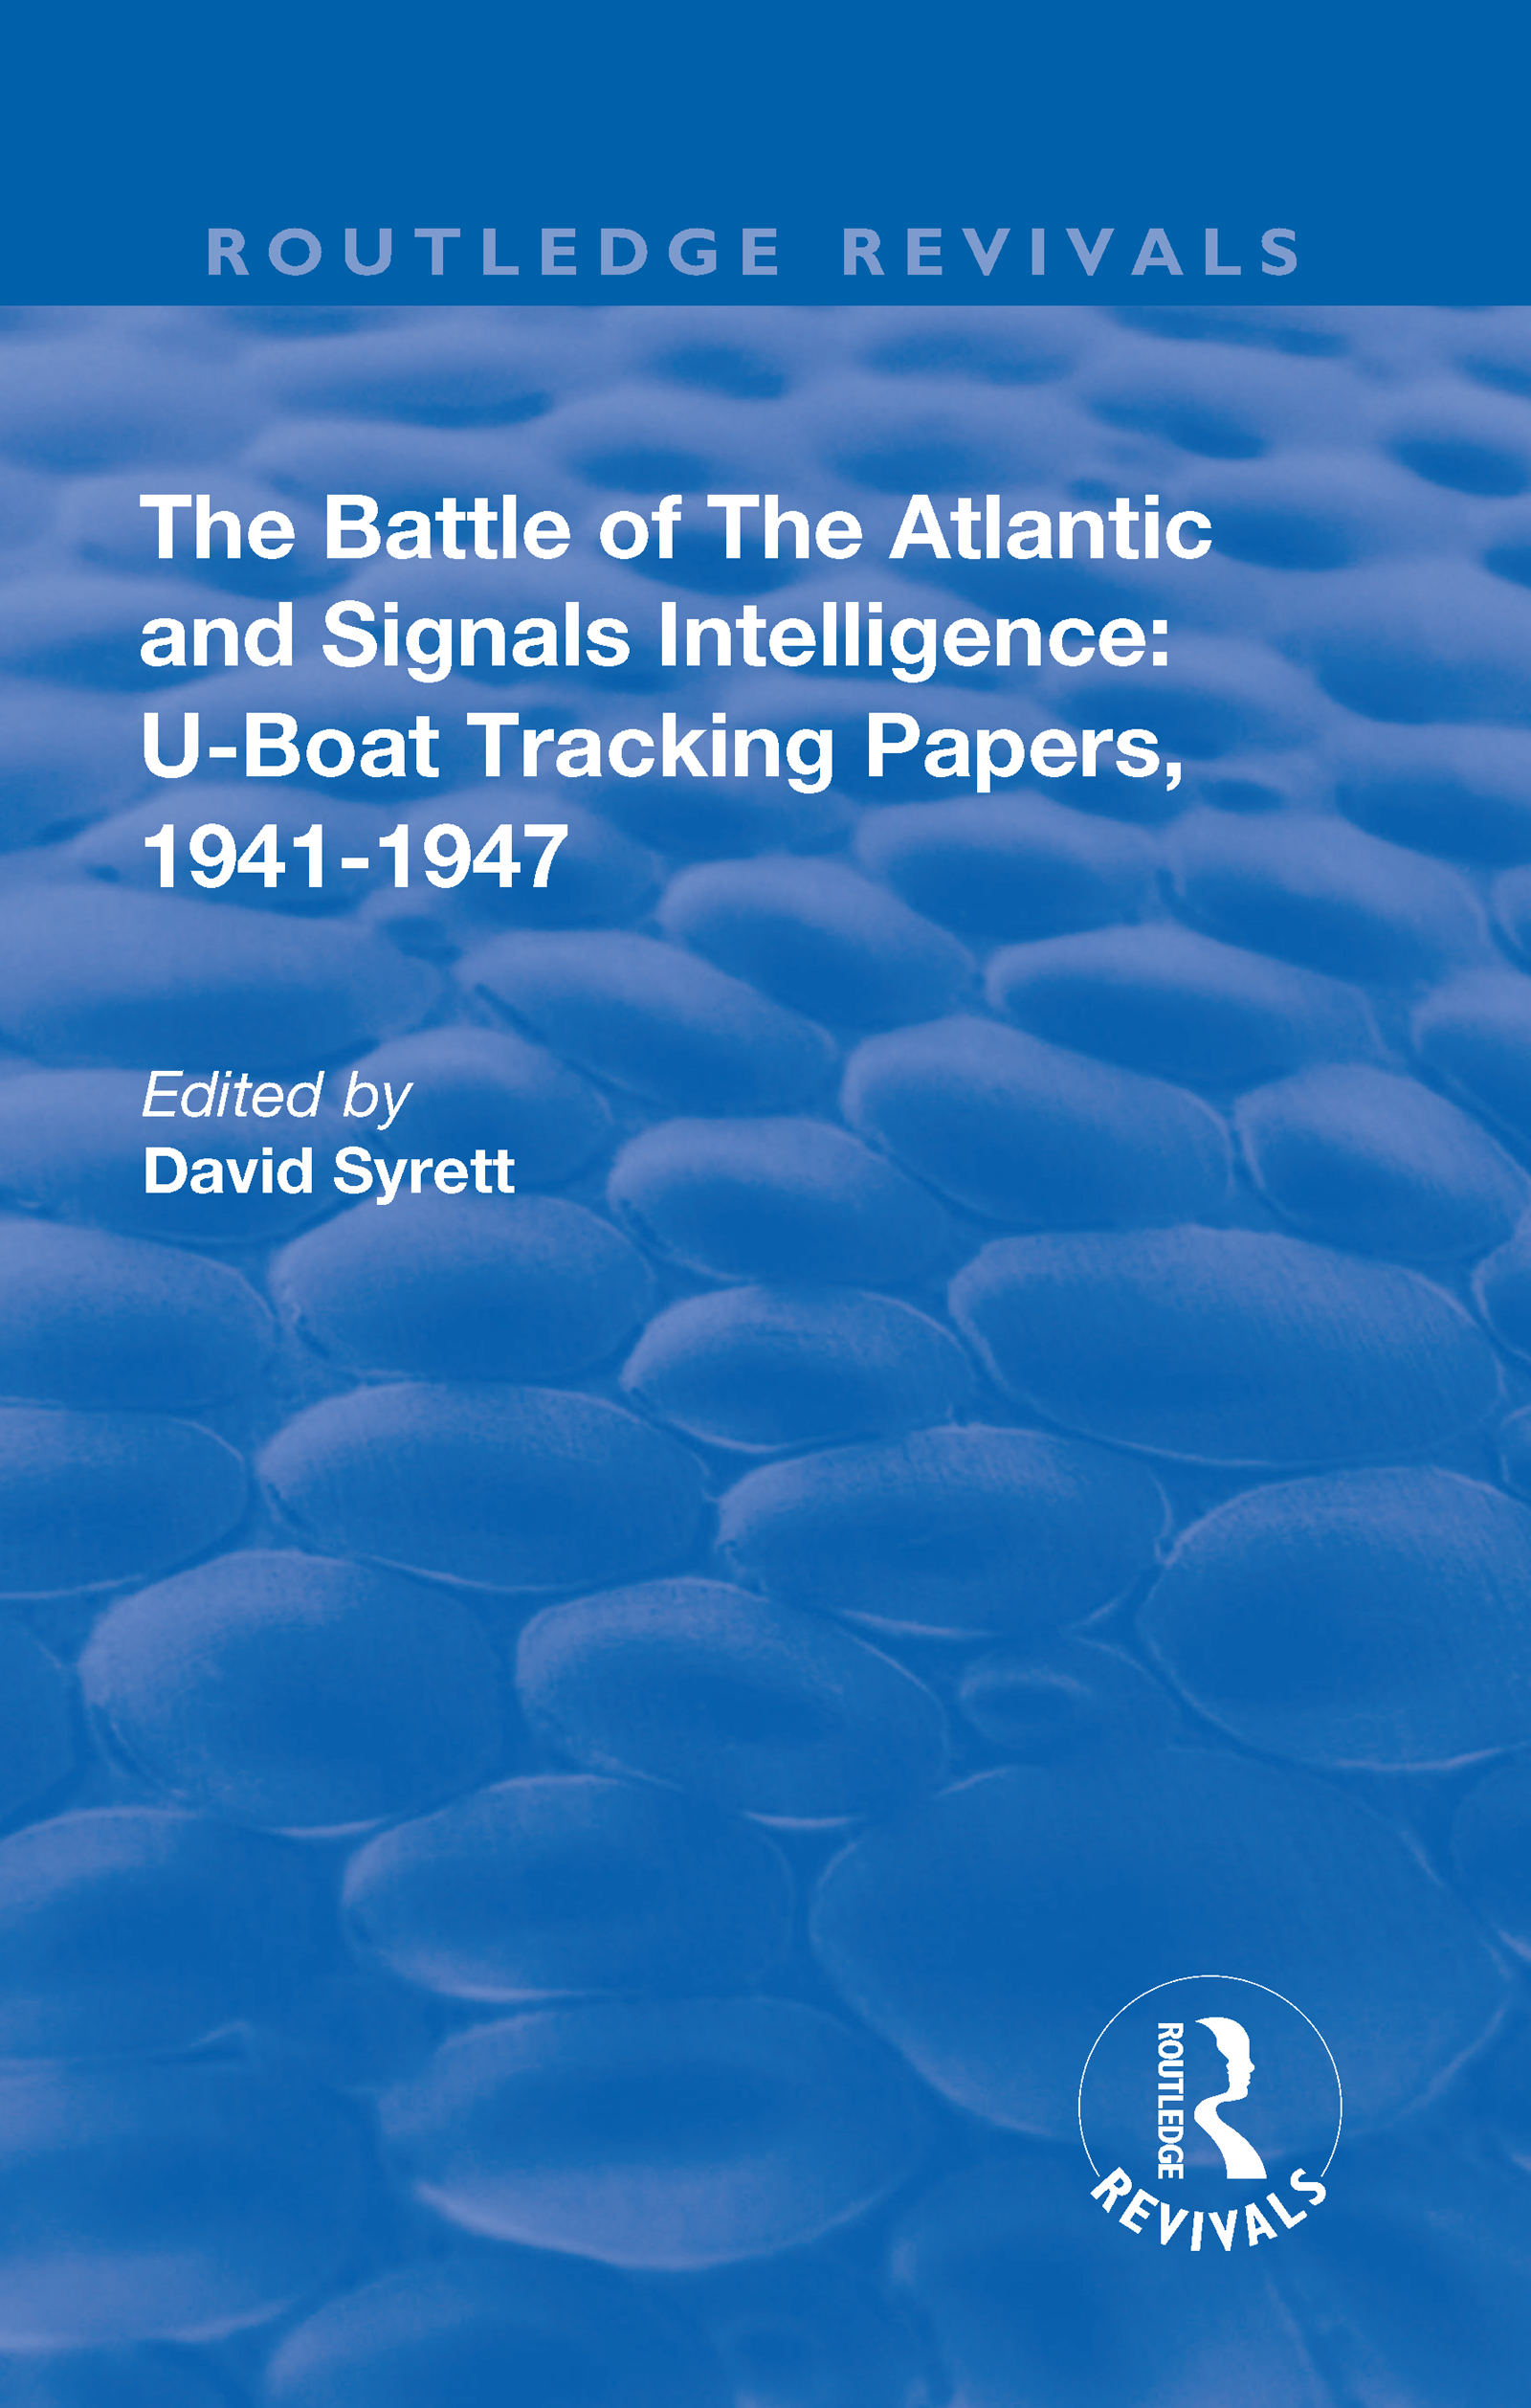 The Battle of the Atlantic and Signals Intelligence